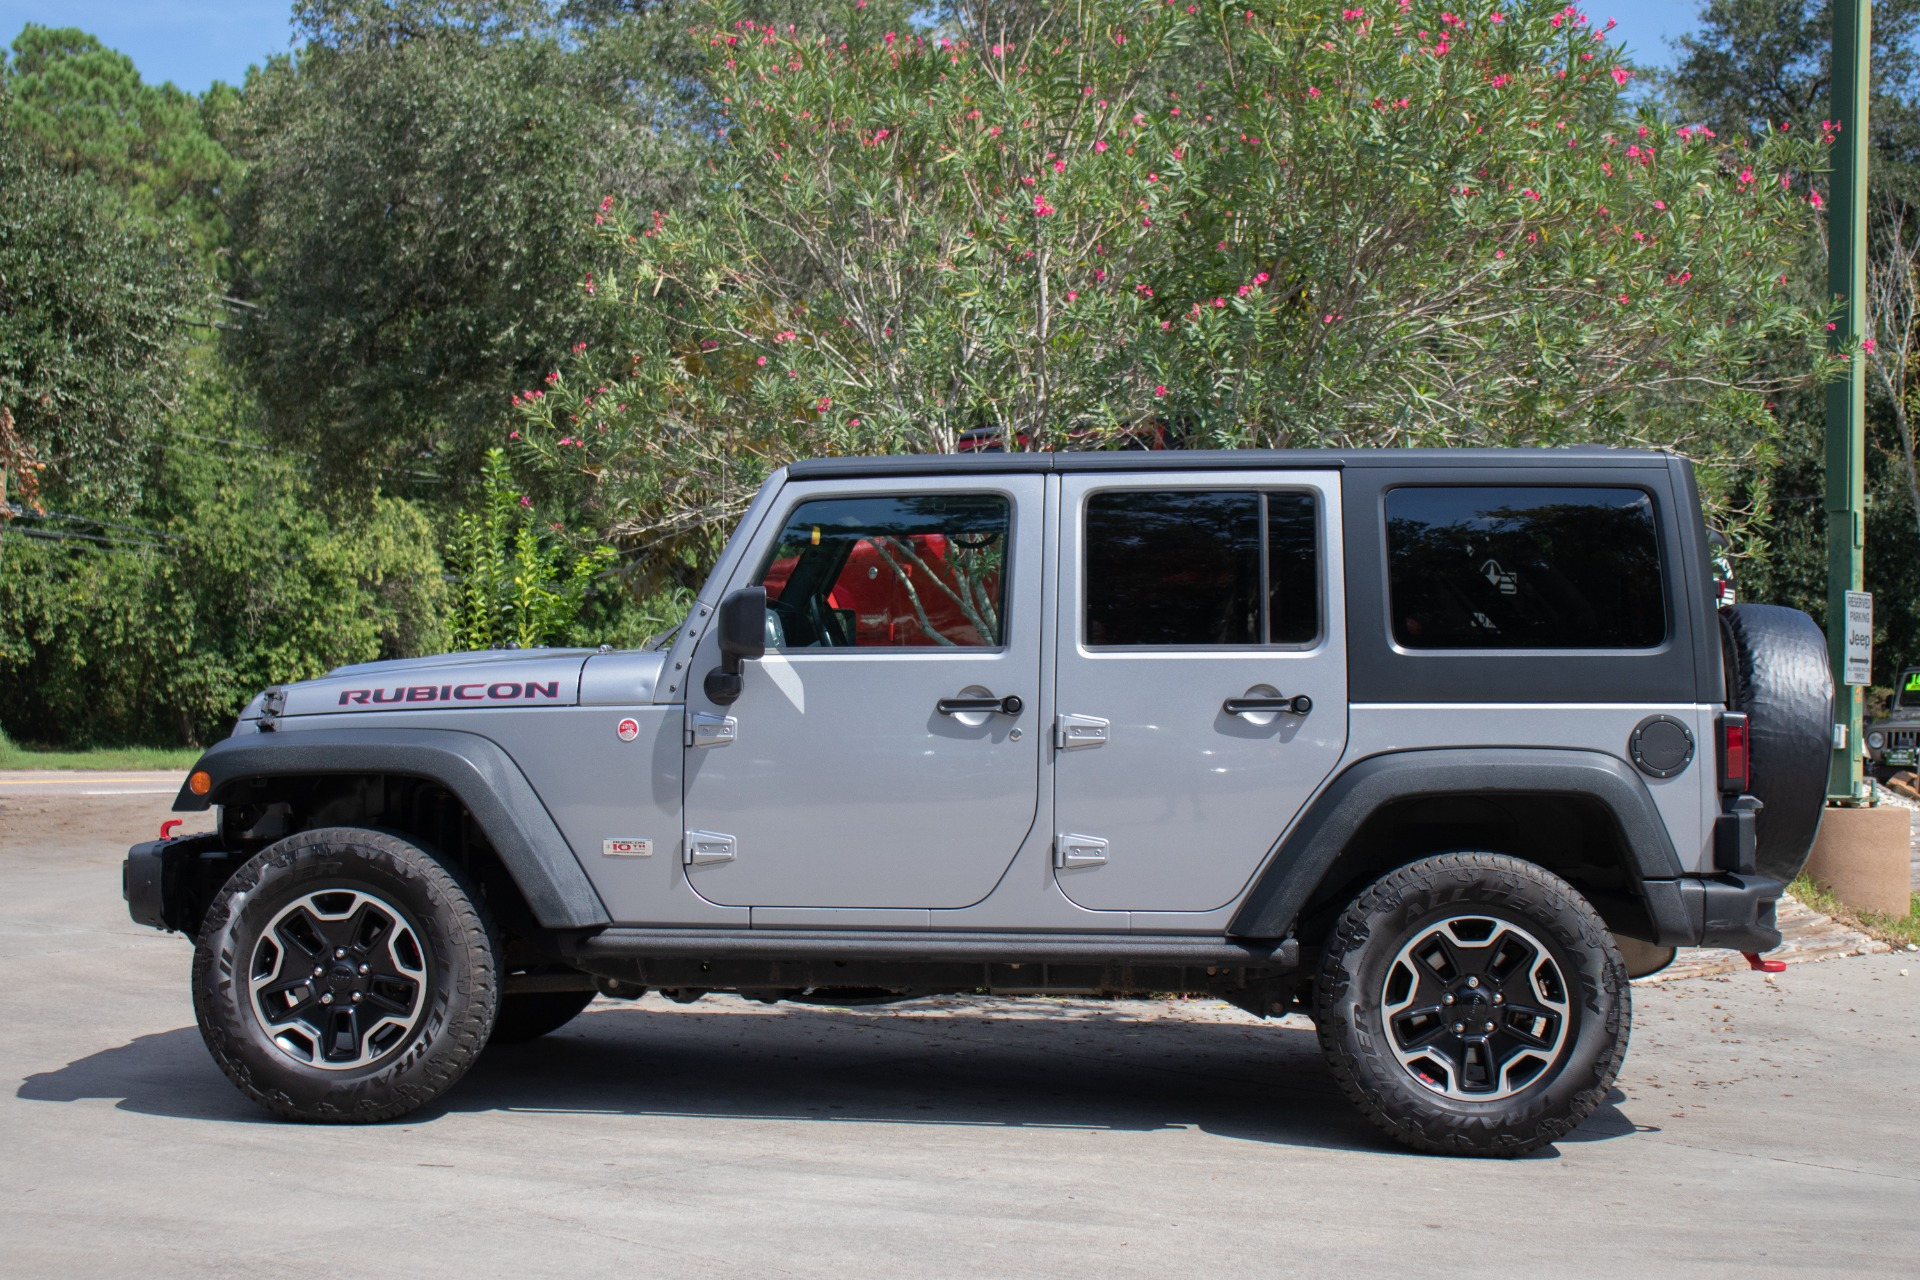 Used-2013-Jeep-Wrangler-Unlimited-10th-Anniversary-Rubicon